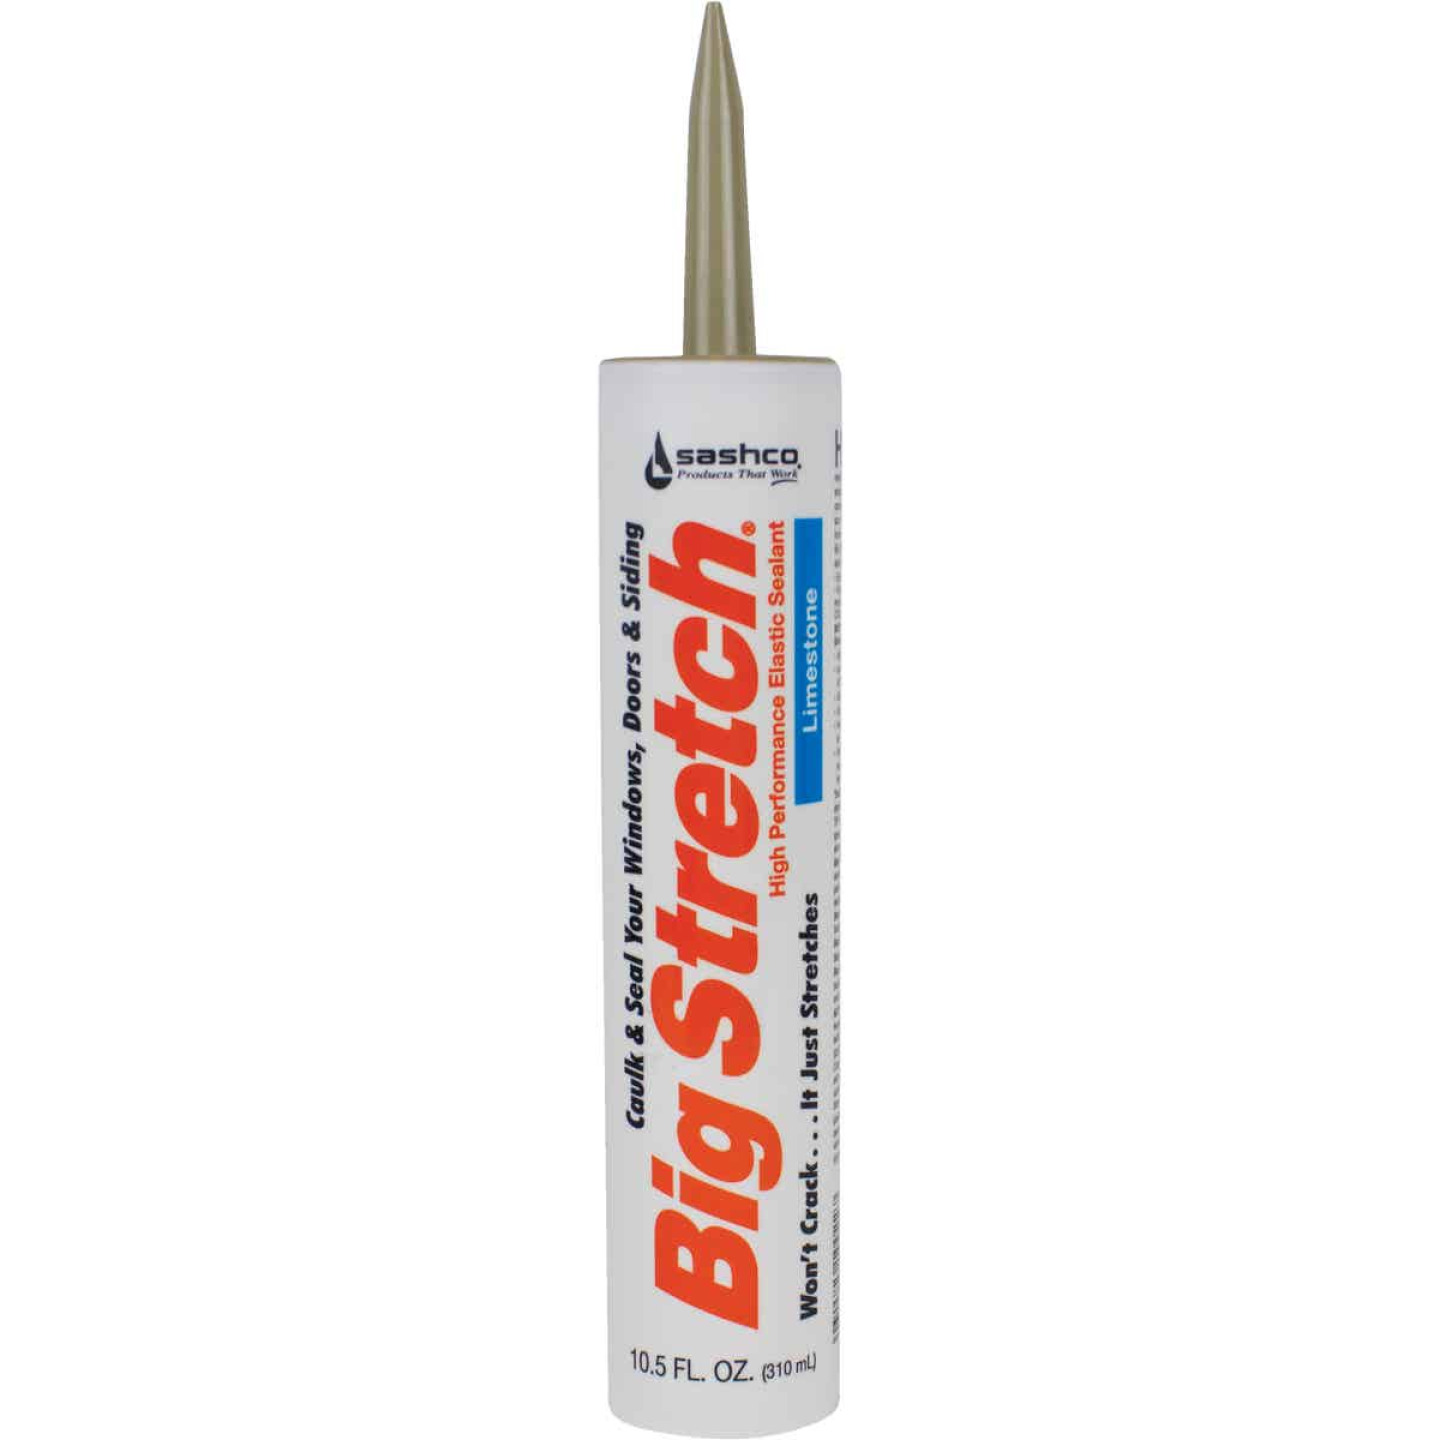 Sashco Big Stretch 10.5 Oz. Acrylic Elastomeric Caulk, Limestone Image 1